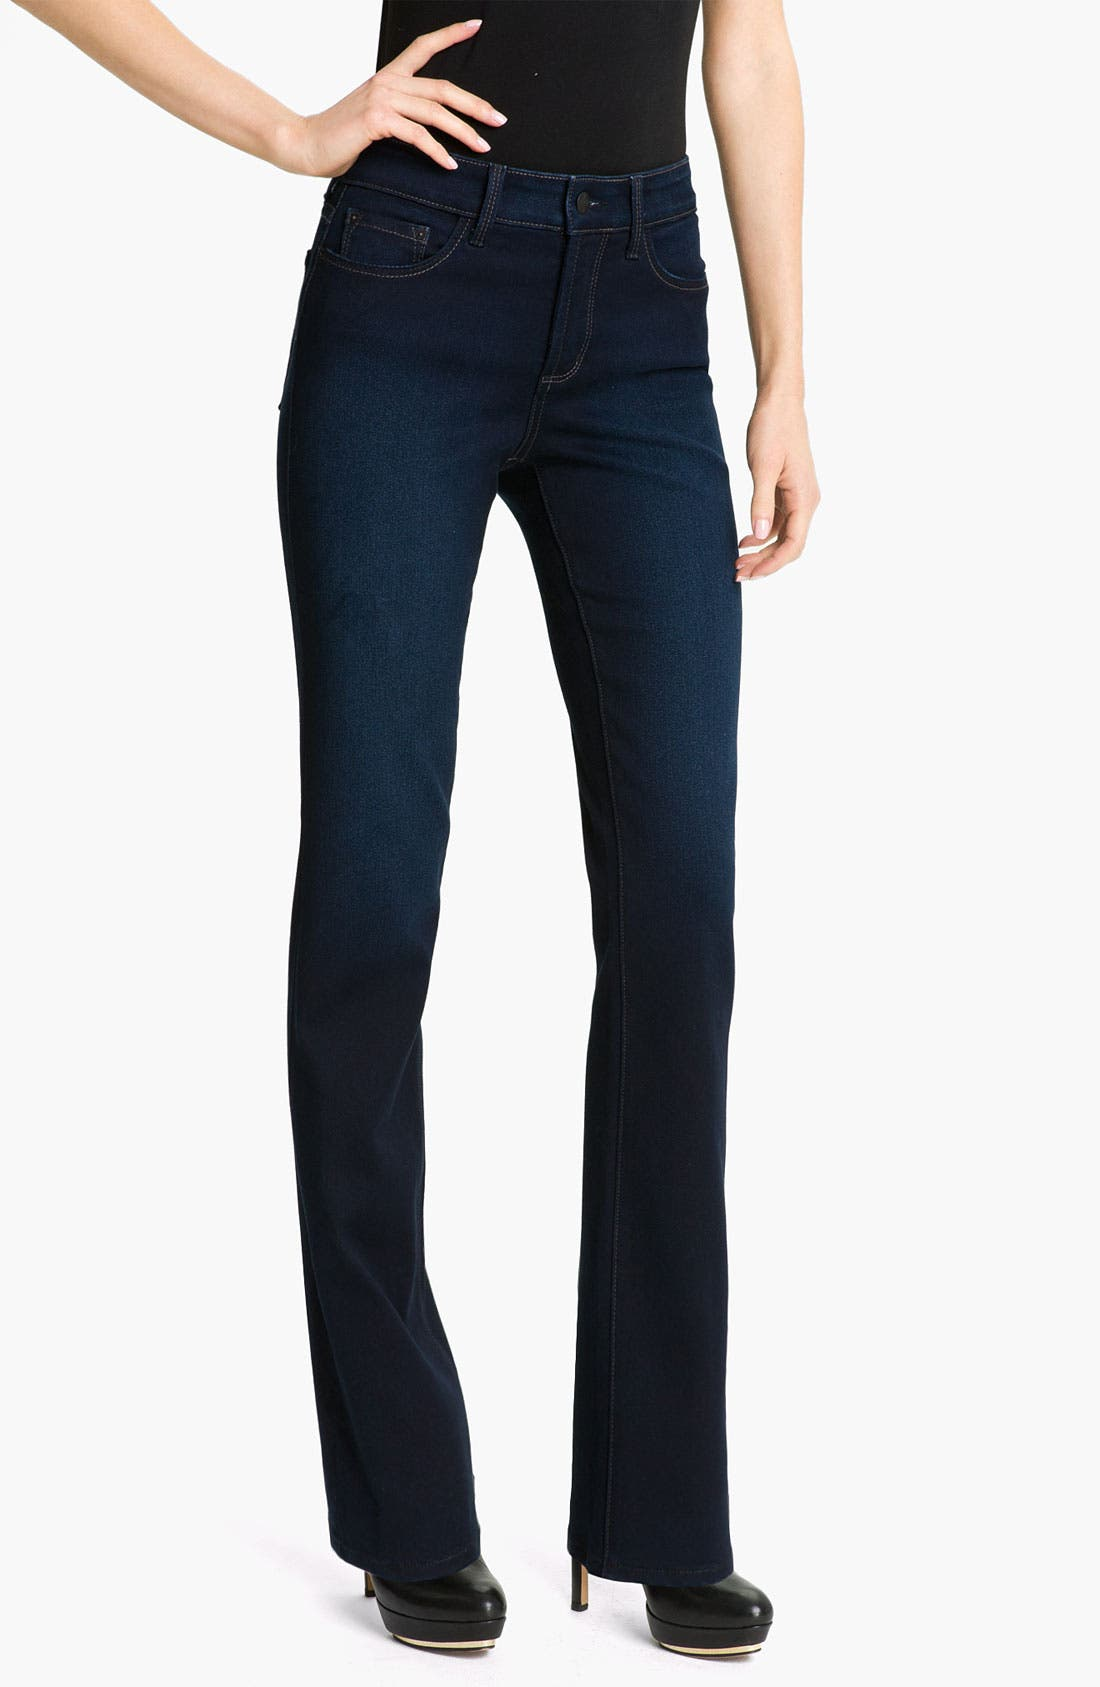 Alternate Image 1 Selected - NYDJ 'Barbara' Bootcut Jeans